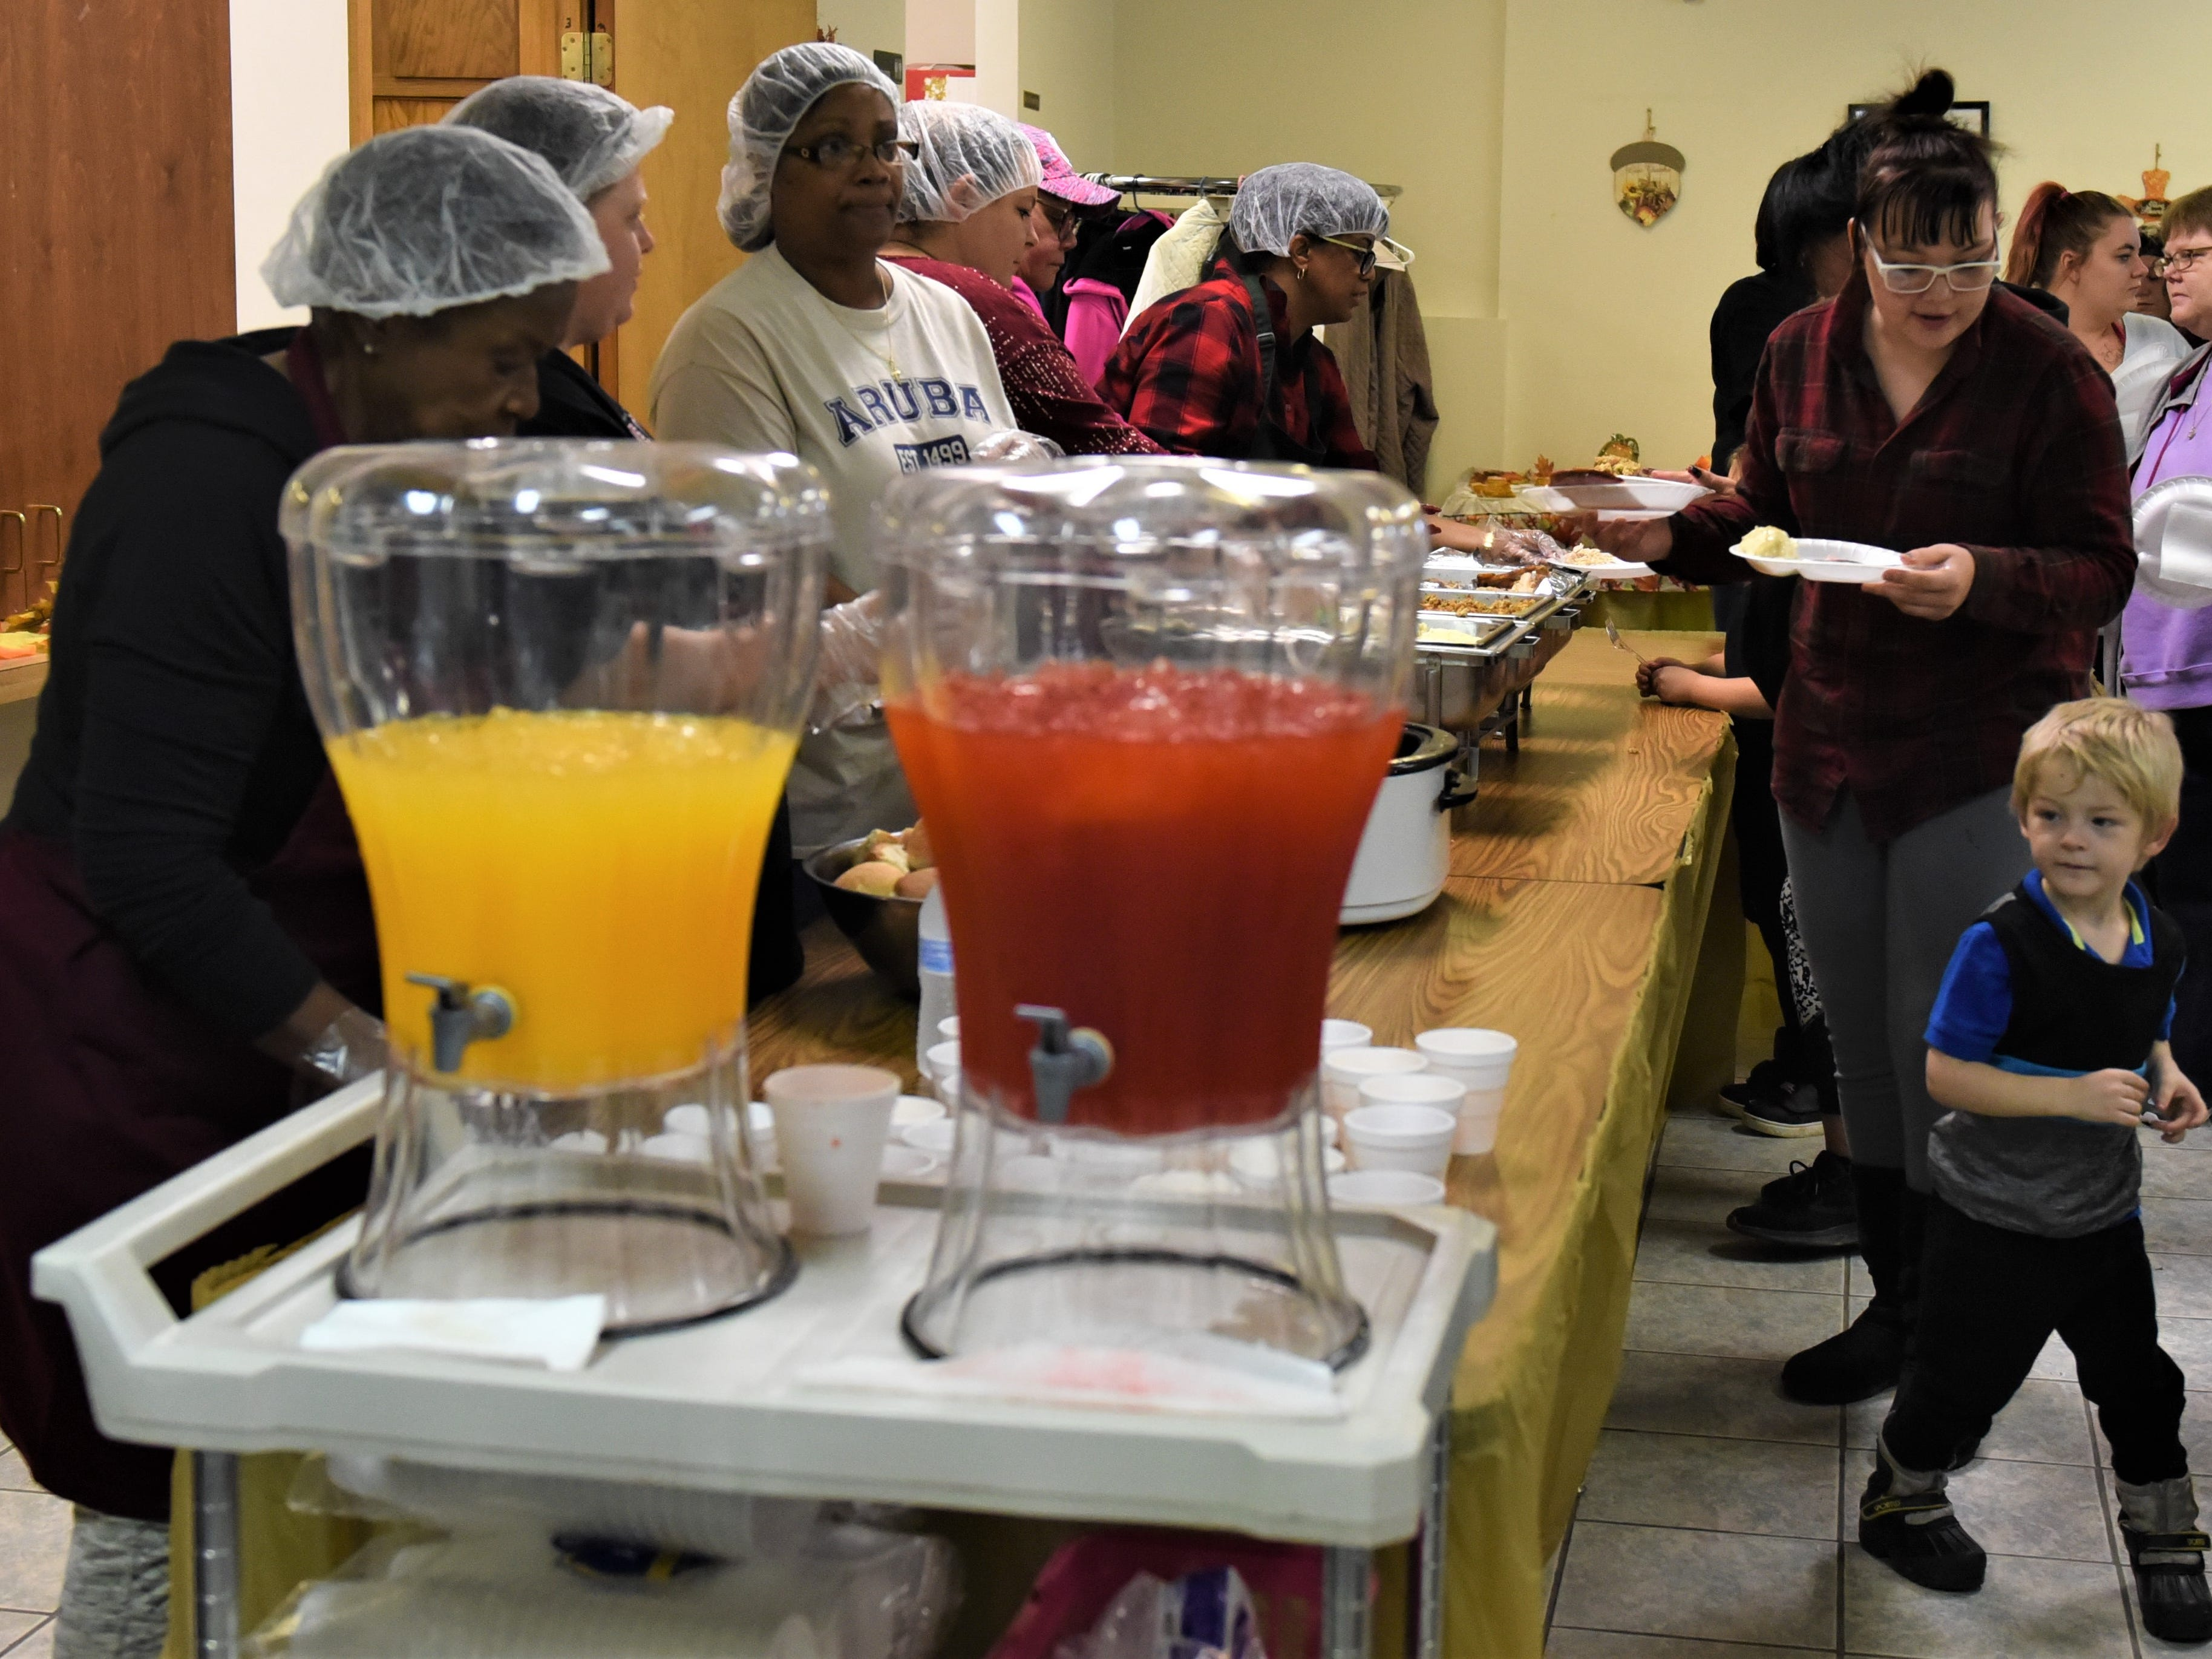 People are served during the annual Thanksgiving dinner at St. Paul AME Church on Pine Street in Zanesville. The event has been held annually for more than a decade on the Saturday before the holiday. The church prepares food for 125 people.